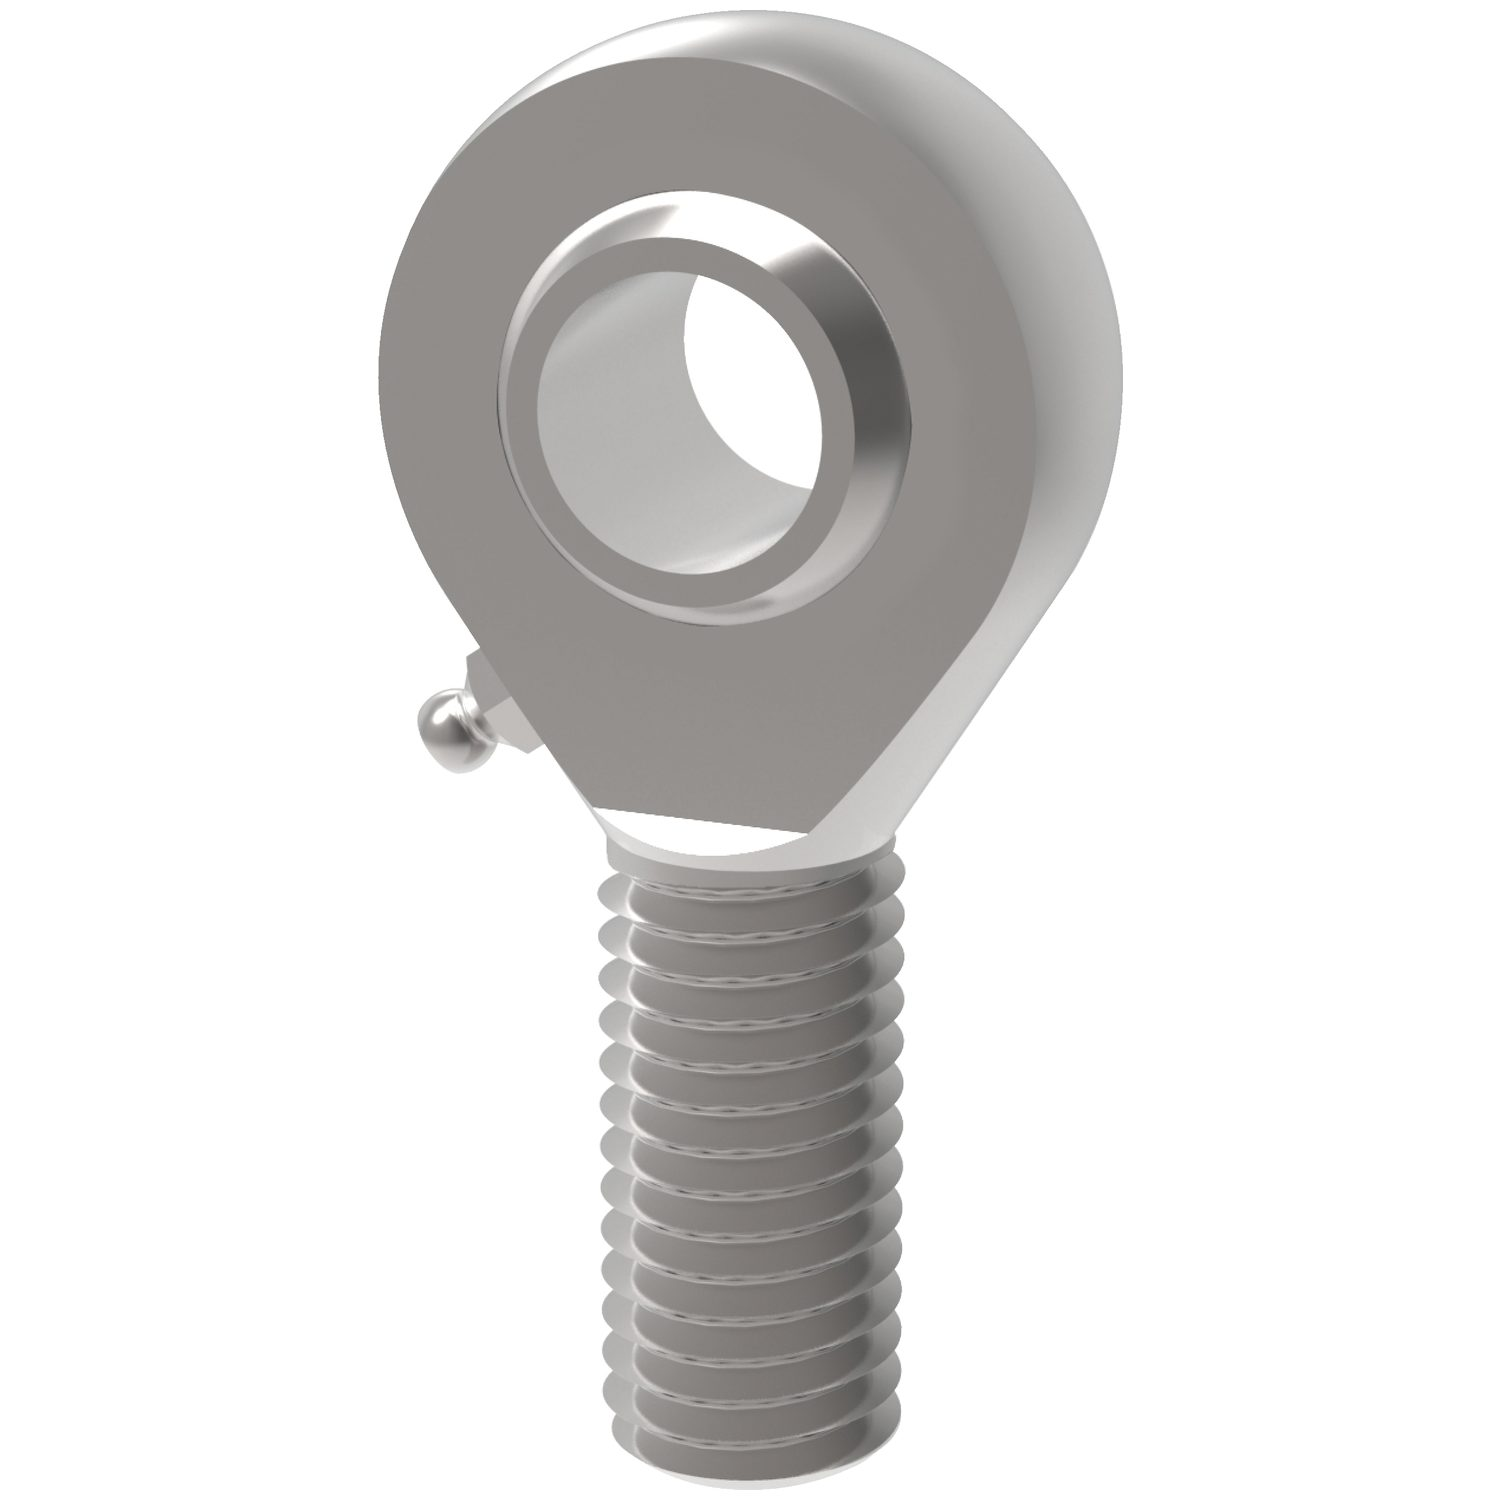 R3563 - Stainless Heavy-Duty Rod Ends - Male